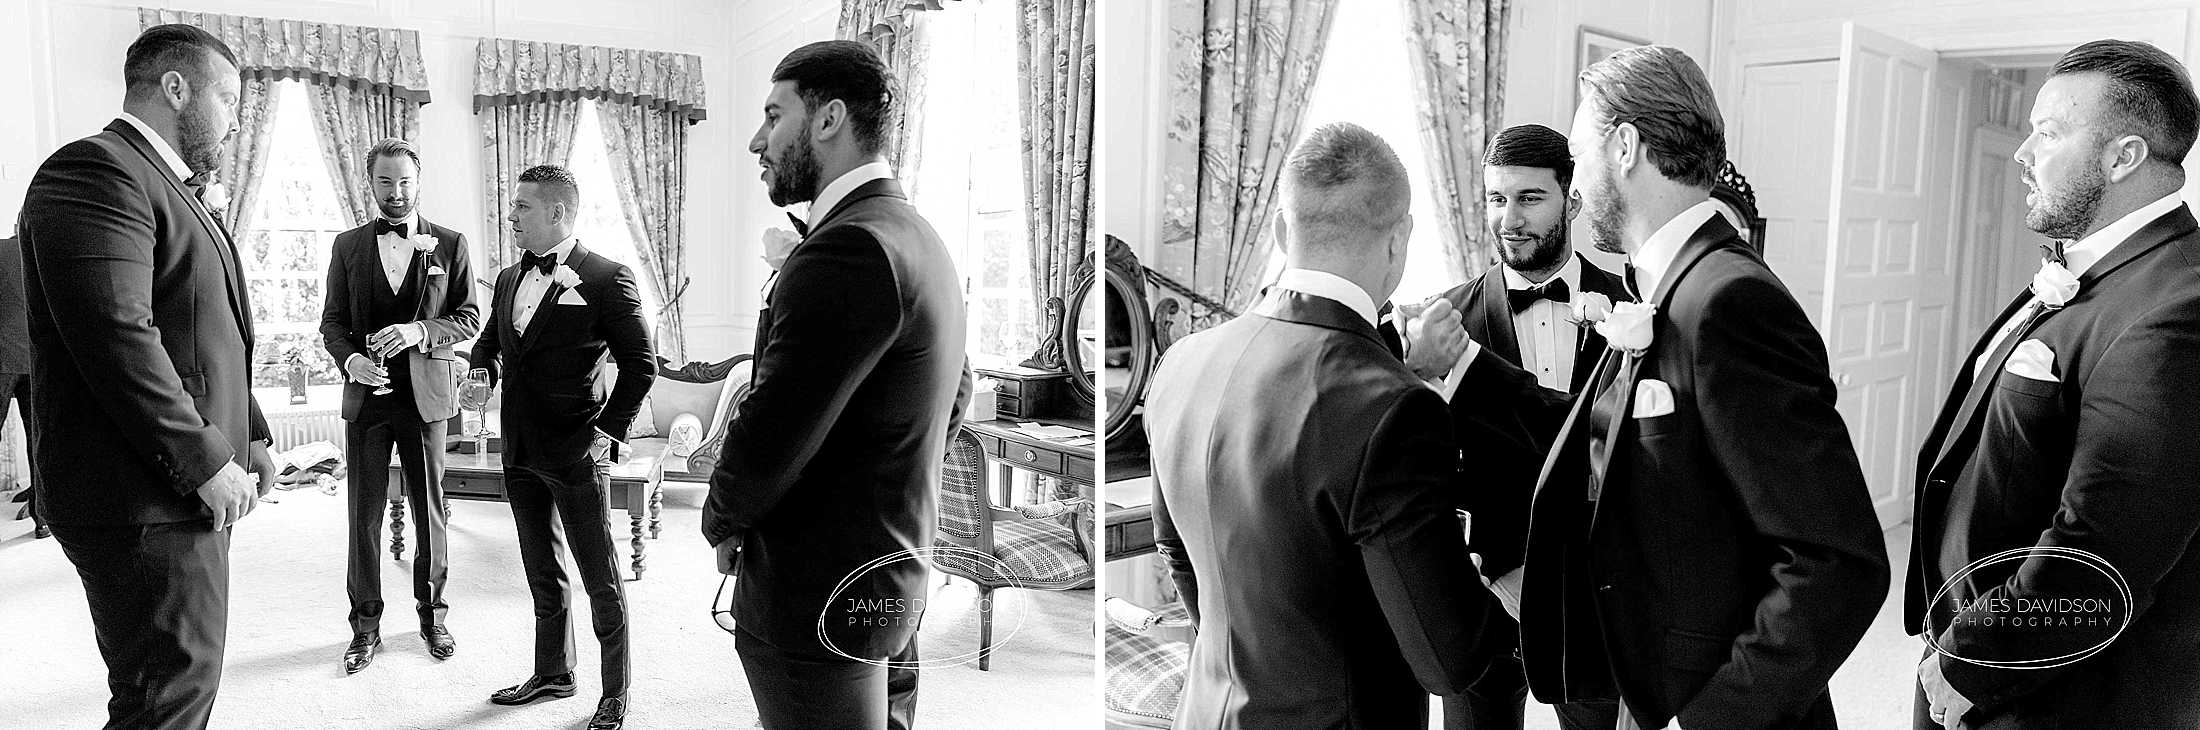 gosfield-hall-wedding-photography-019